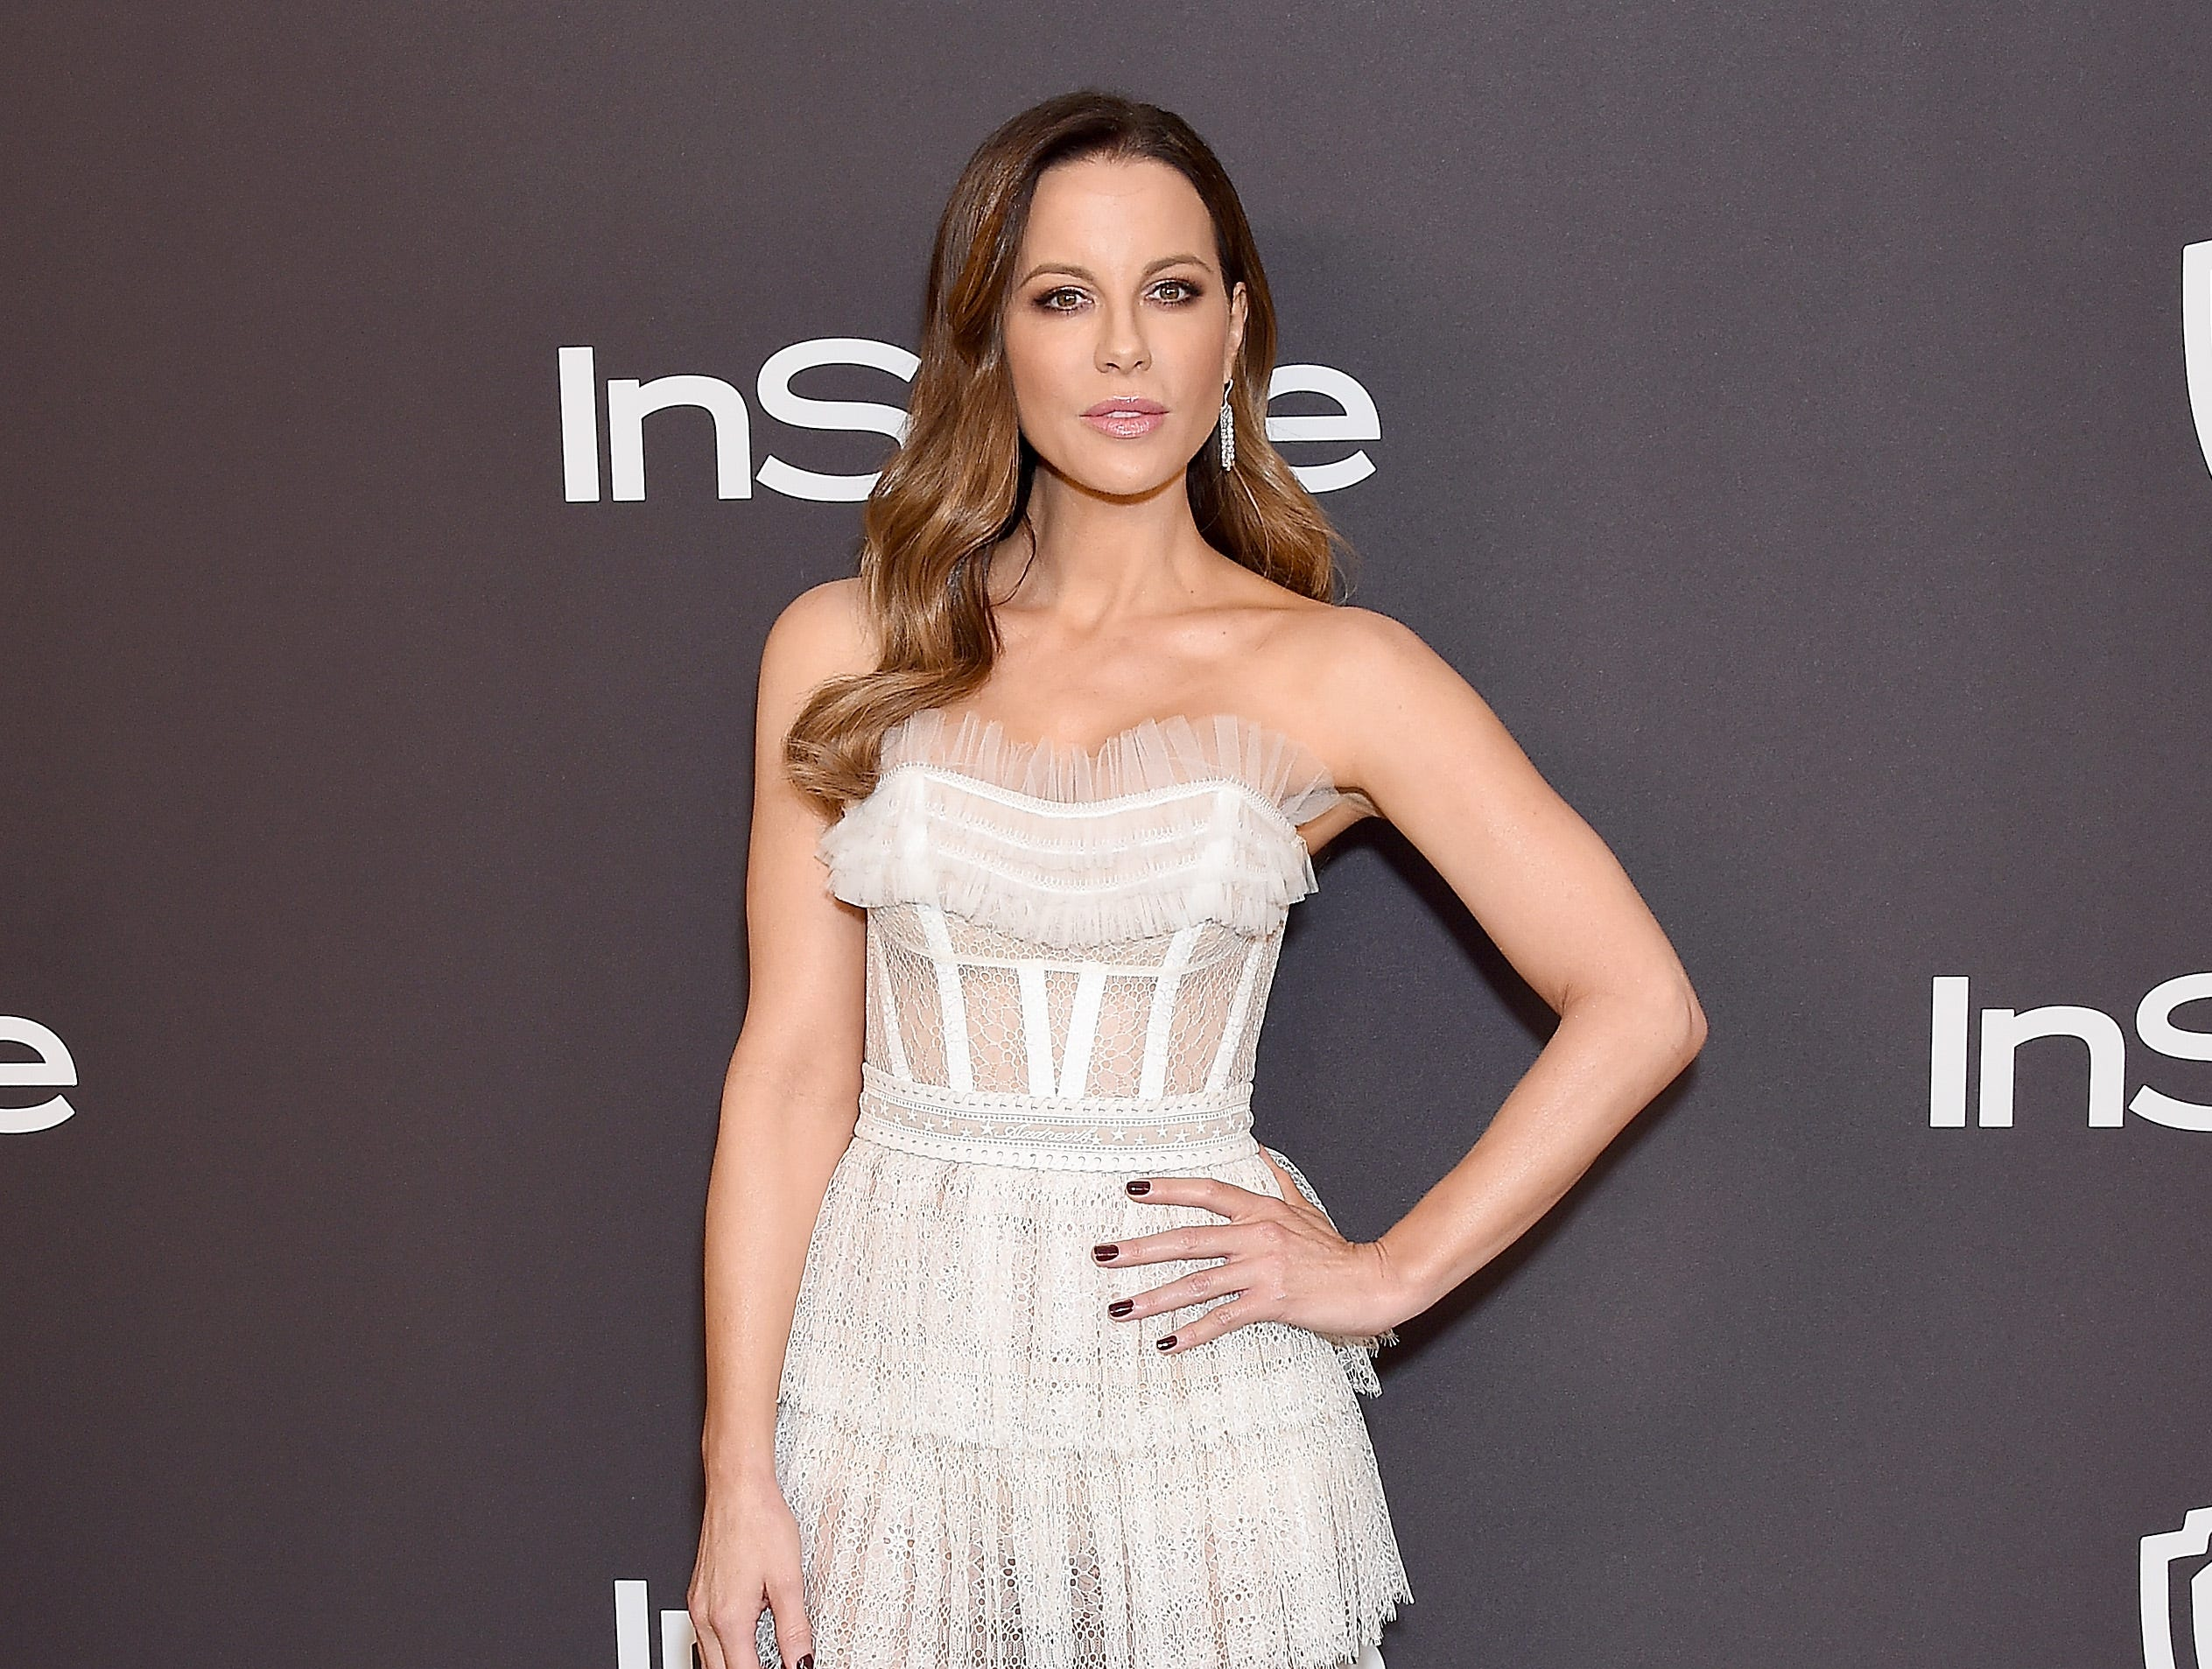 BEVERLY HILLS, CA - JANUARY 06:  Kate Beckinsale attends the InStyle And Warner Bros. Golden Globes After Party 2019 at The Beverly Hilton Hotel on January 6, 2019 in Beverly Hills, California.  (Photo by Gregg DeGuire/WireImage) ORG XMIT: 775268365 ORIG FILE ID: 1078656386